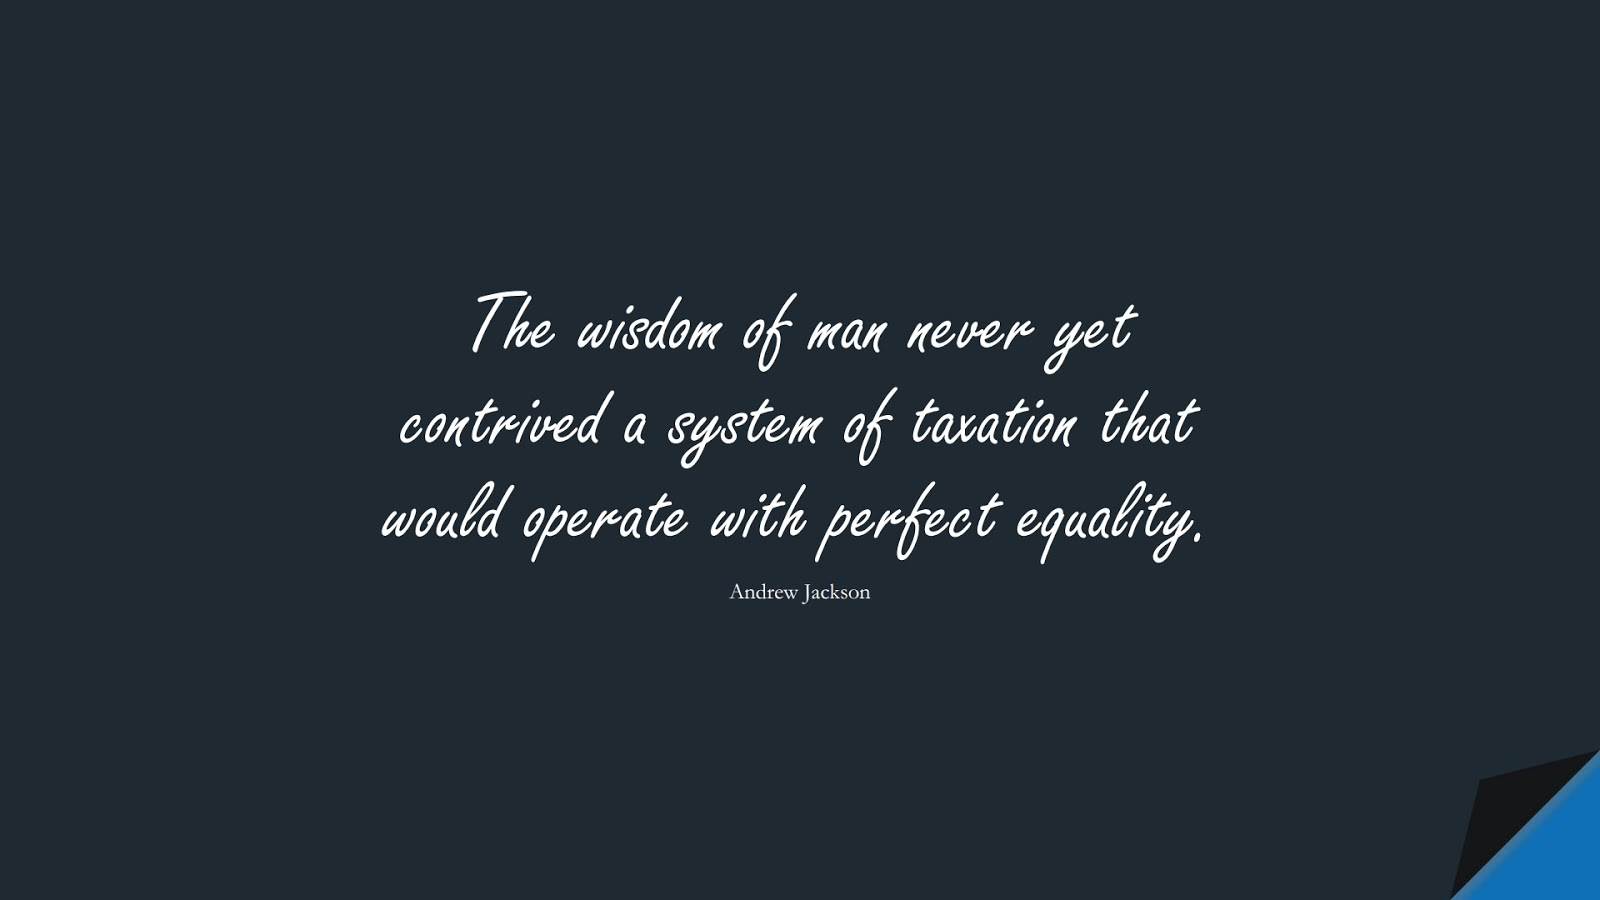 The wisdom of man never yet contrived a system of taxation that would operate with perfect equality. (Andrew Jackson);  #WordsofWisdom